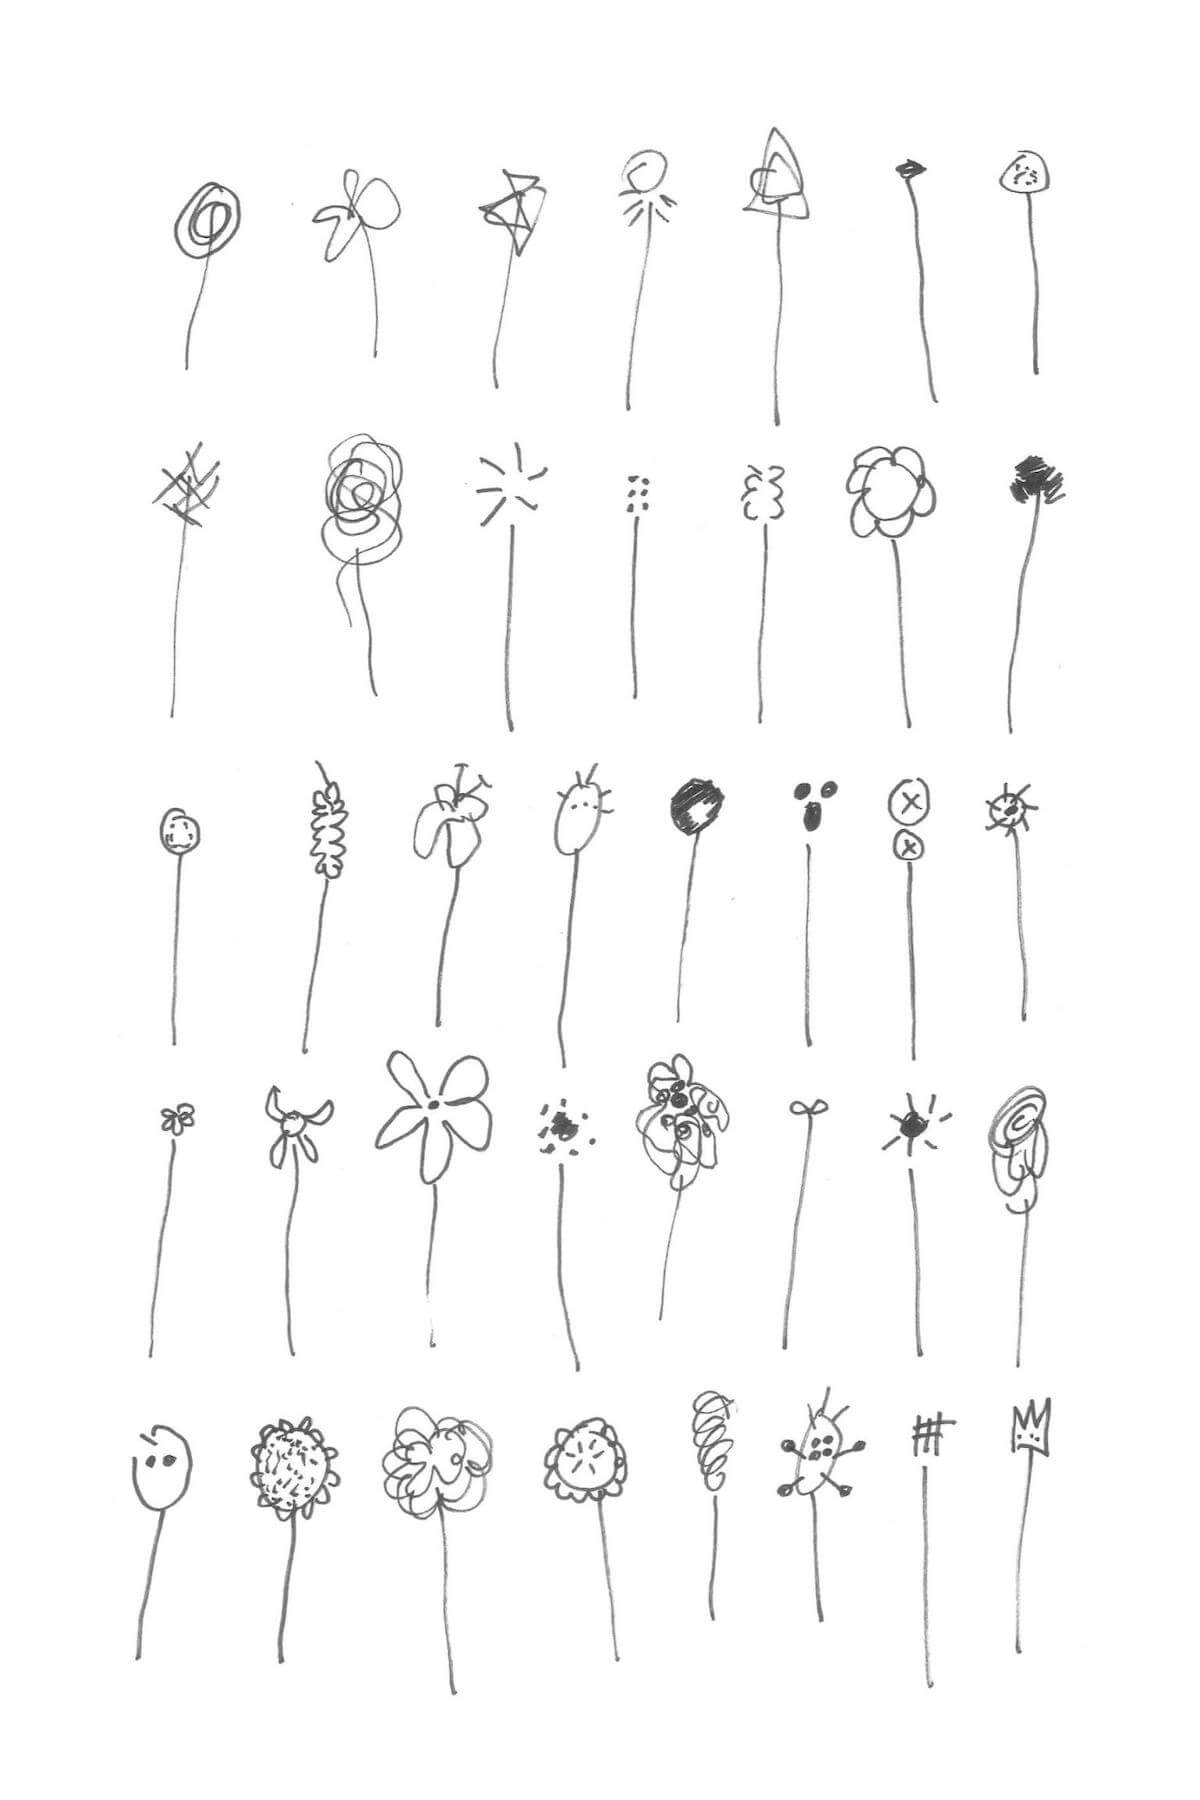 A drawing of a grid of simply drawn stick flowers. There are thirty-five in all in five rows of seven flowers.